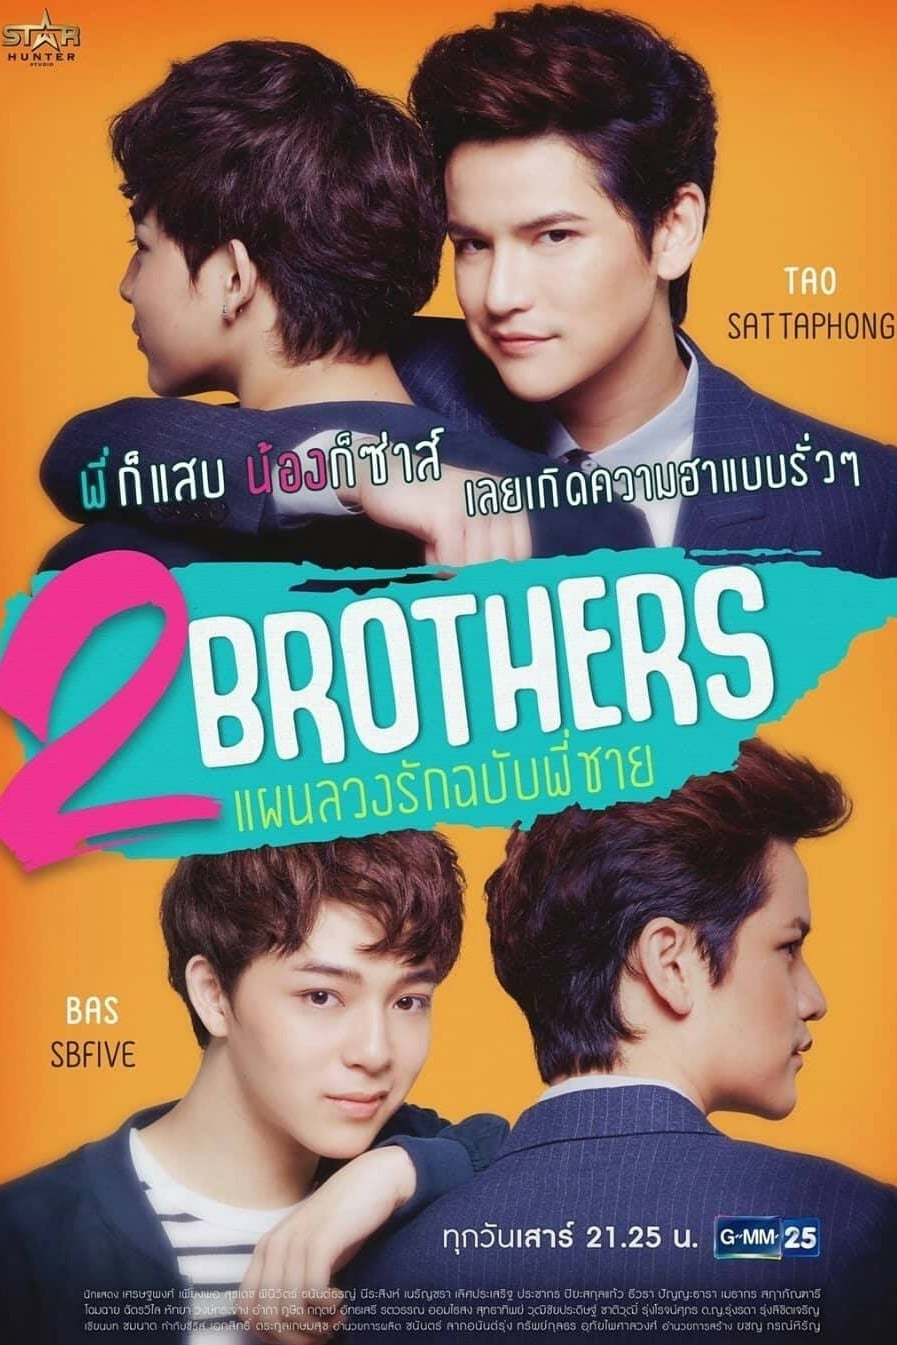 2 Brothers แผนลวงรักฉบับพี่ชาย TV Shows About Big Family